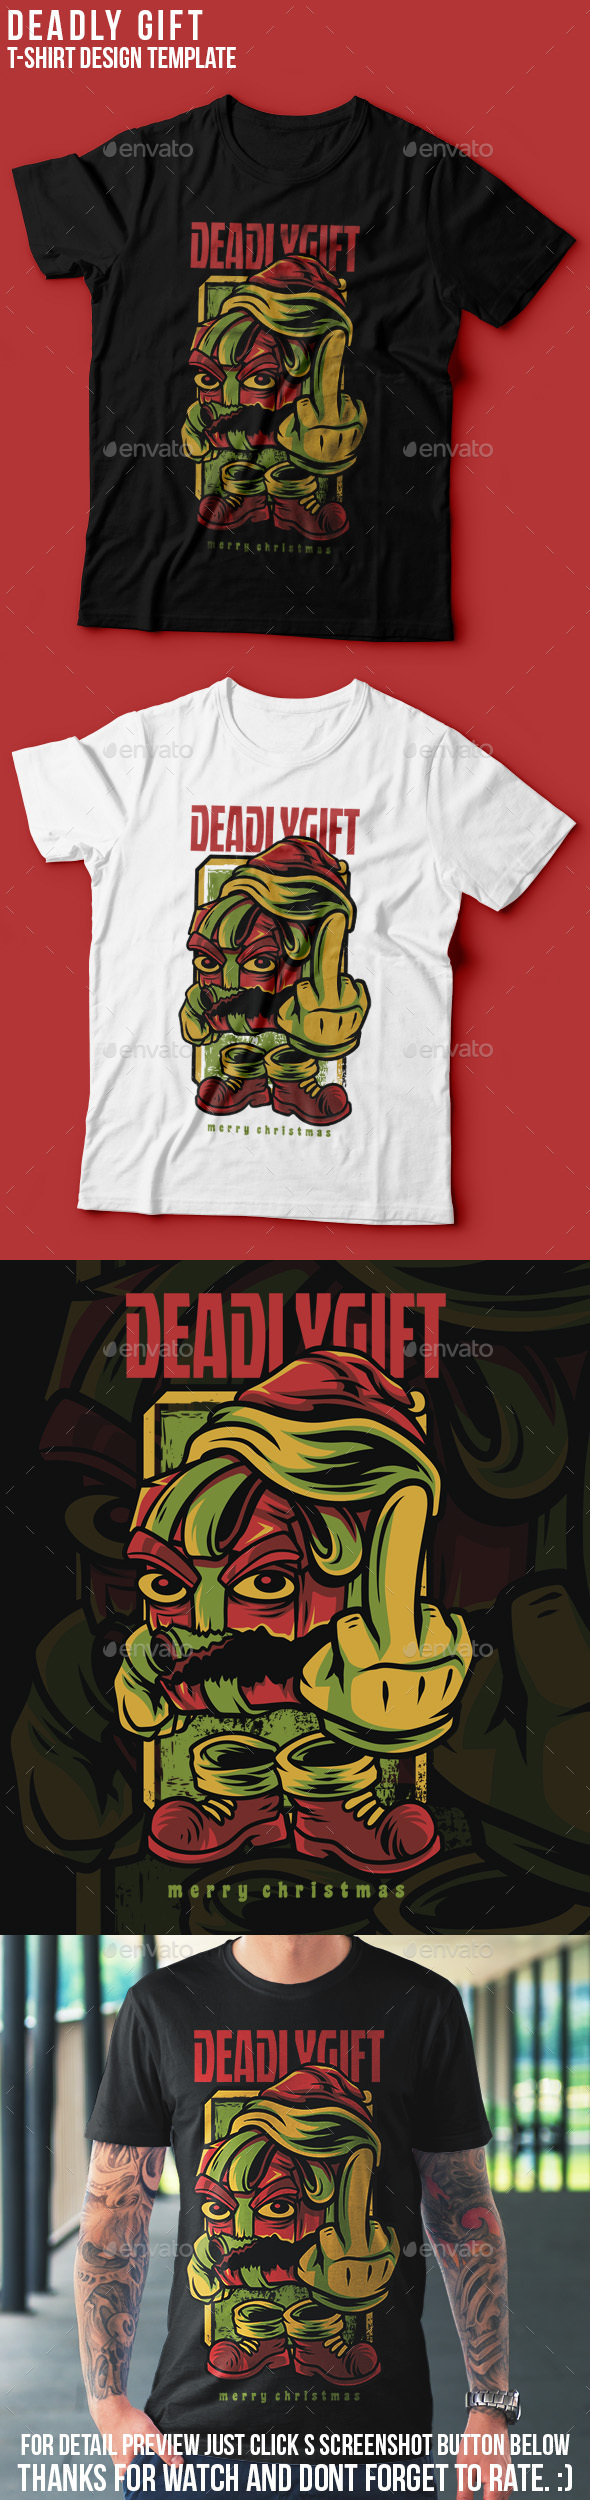 Deadly Gift Happy Christmas T-Shirt Design